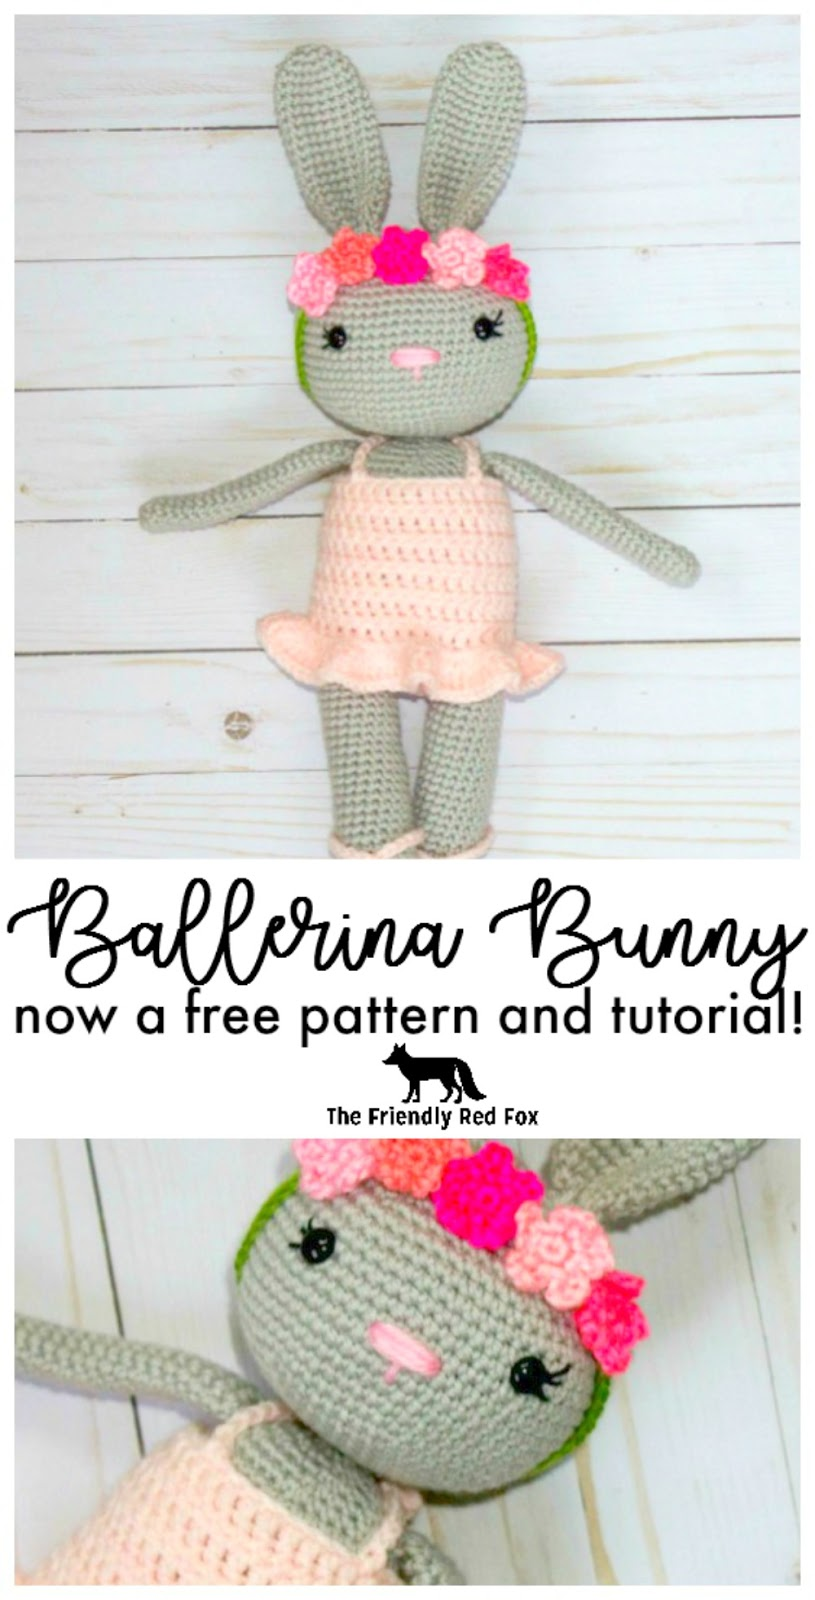 Bunny heart amigurumi pattern - Amigurumi Today | 1600x815